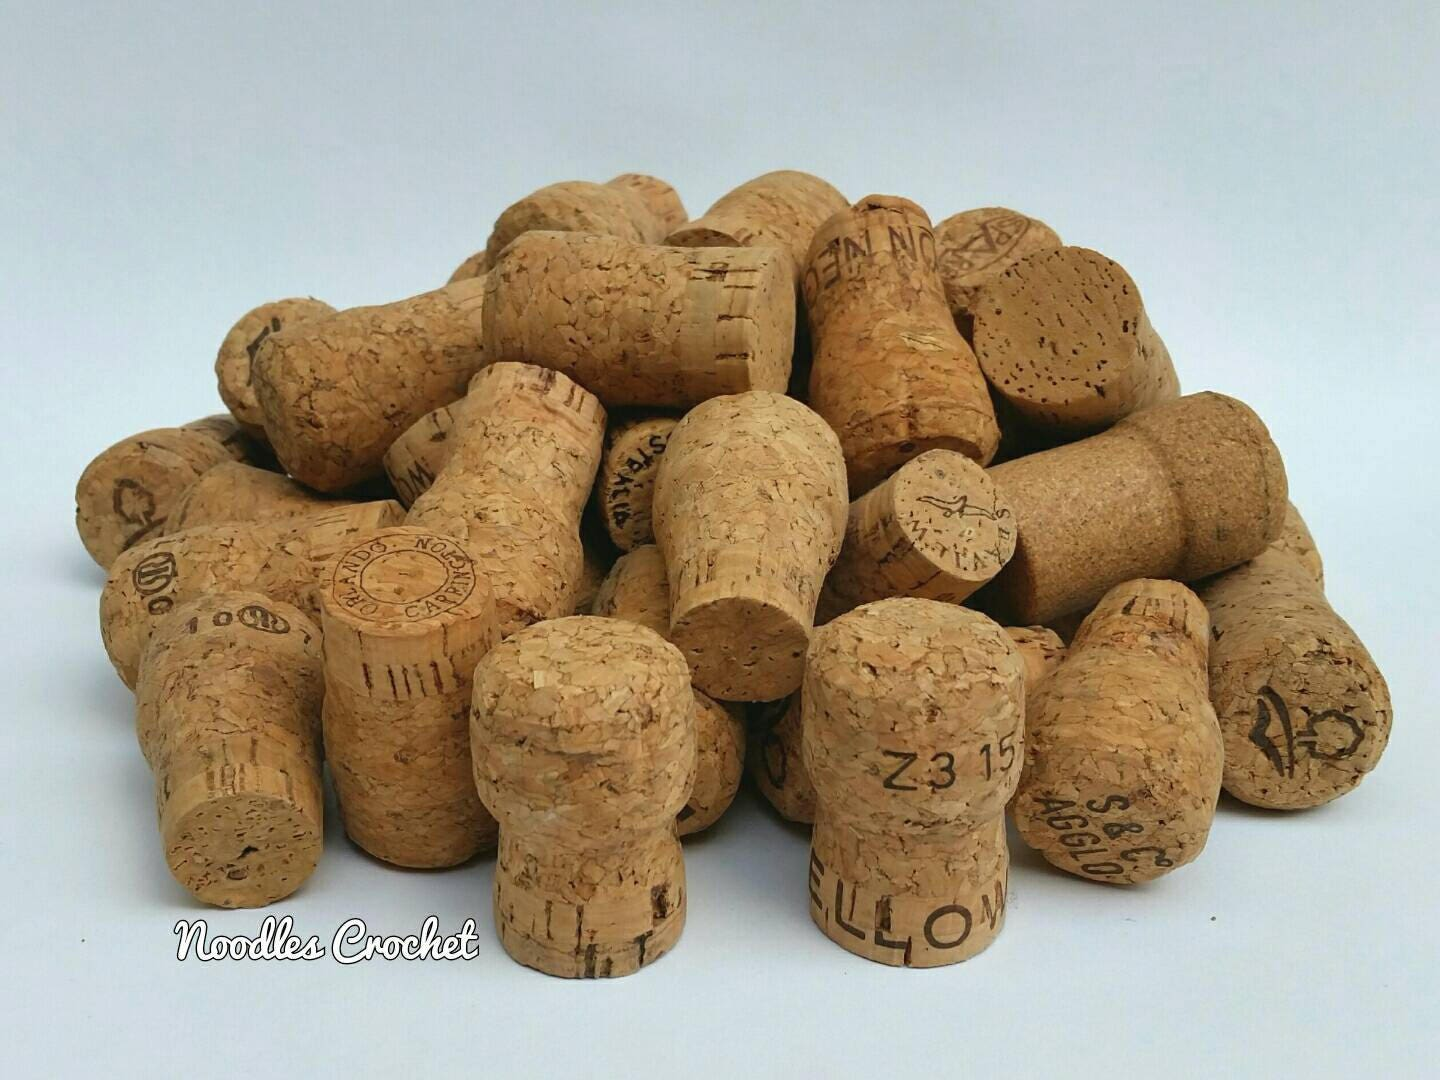 Used wine corks for crafts -  7 25